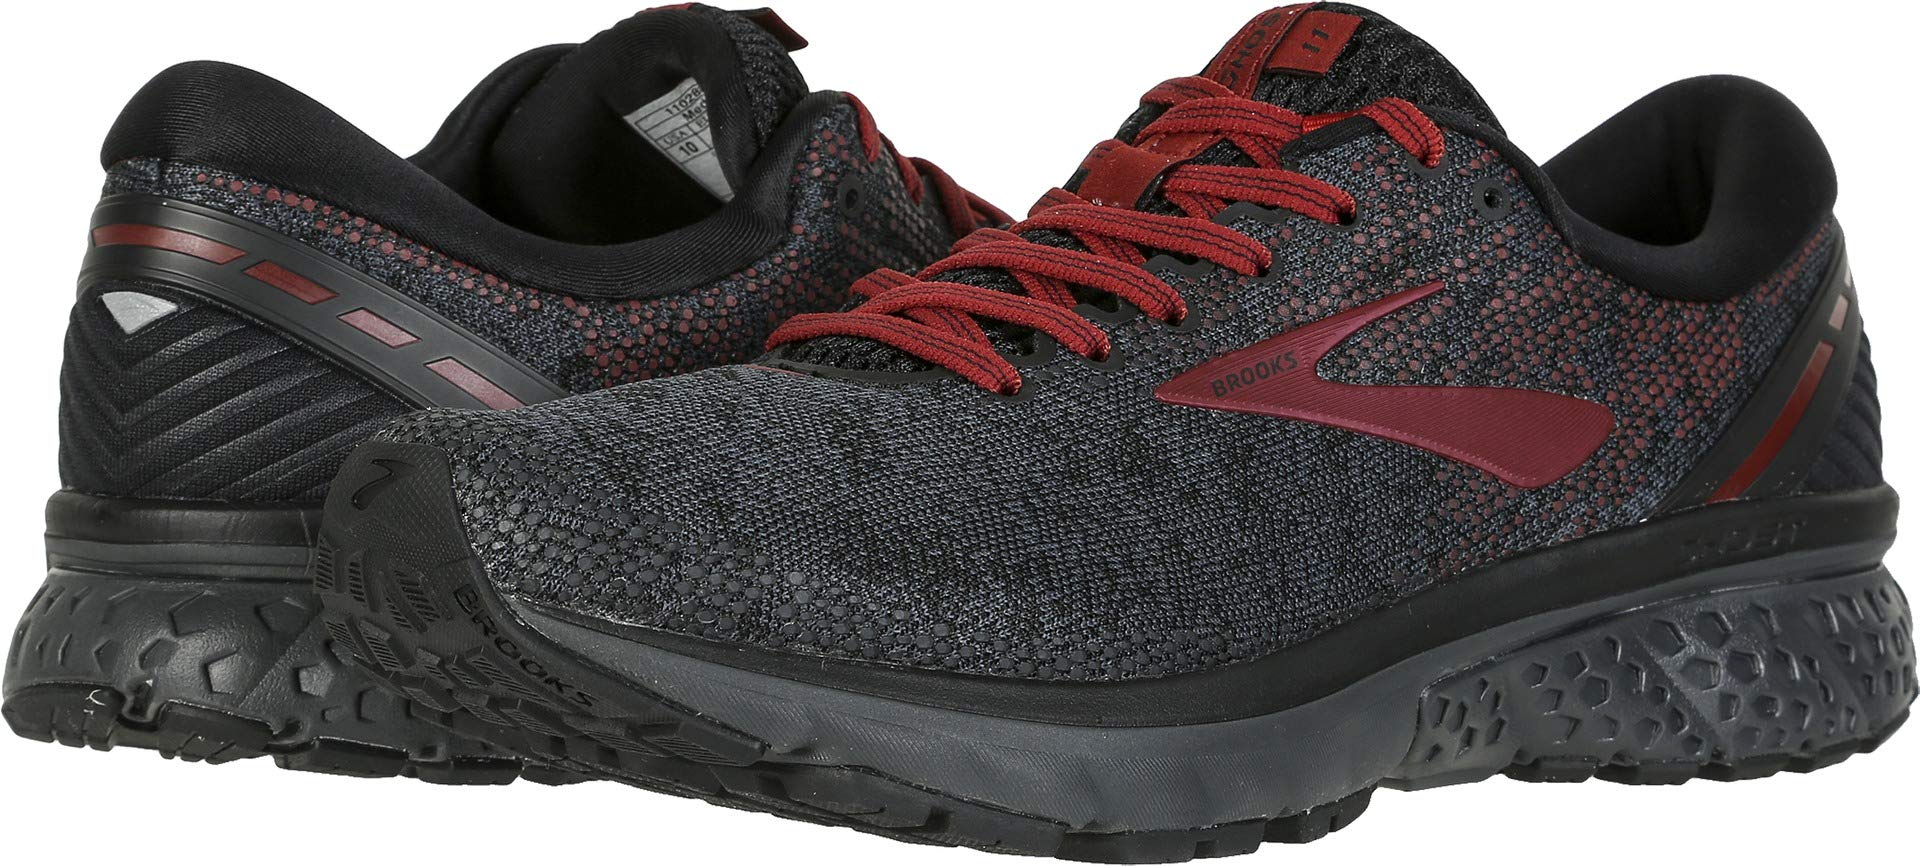 Brooks Men's Ghost 11 Black/White/Merlot 15 D US by Brooks (Image #3)